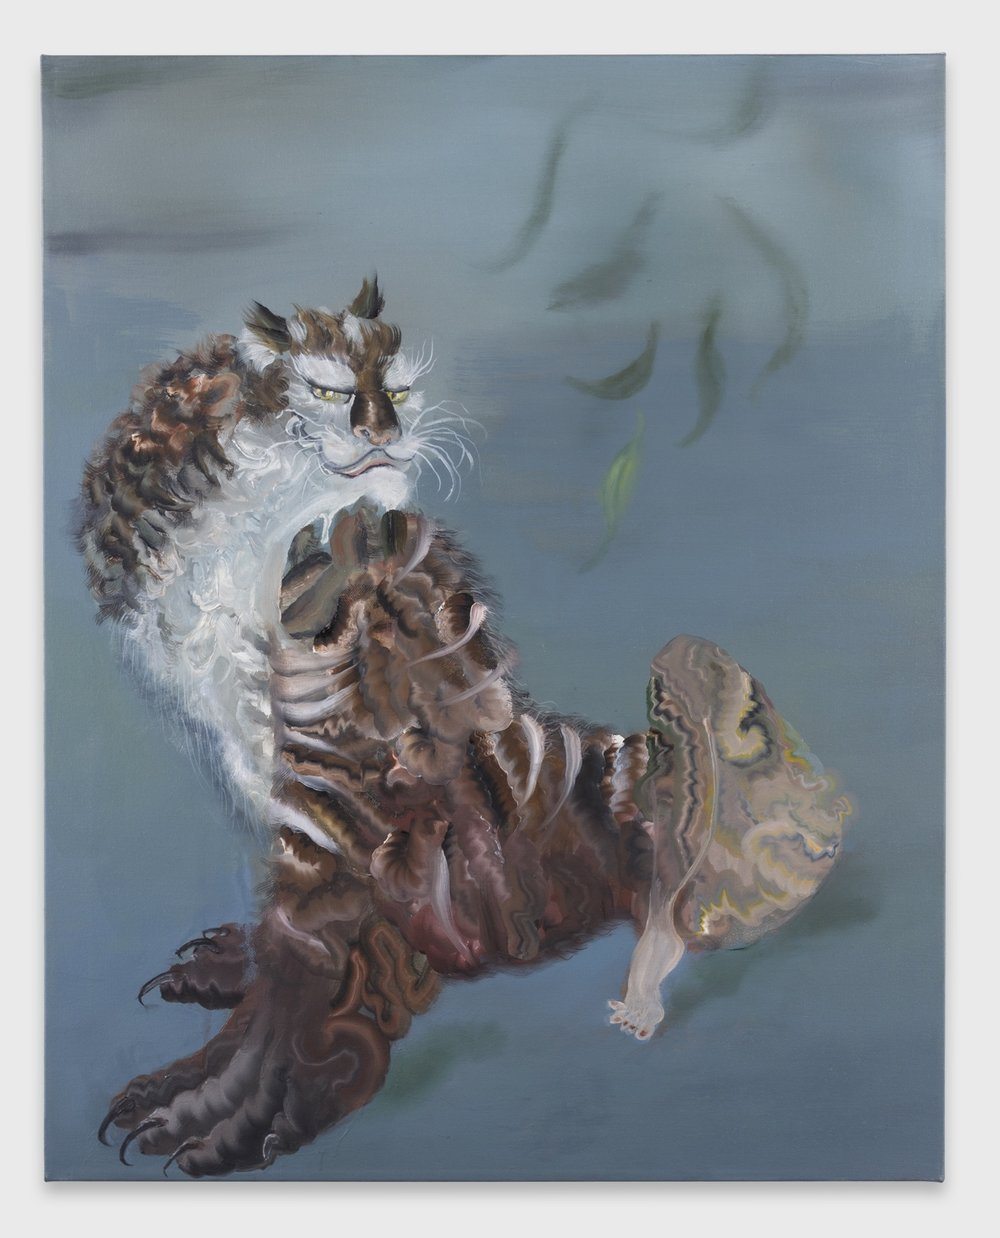 Autumn Ramsey,  Cat with Sexy Leg , 2016, oil on canvas, 30 x 24 inches (76.2 x 60.9 cm), #AR-2016.007